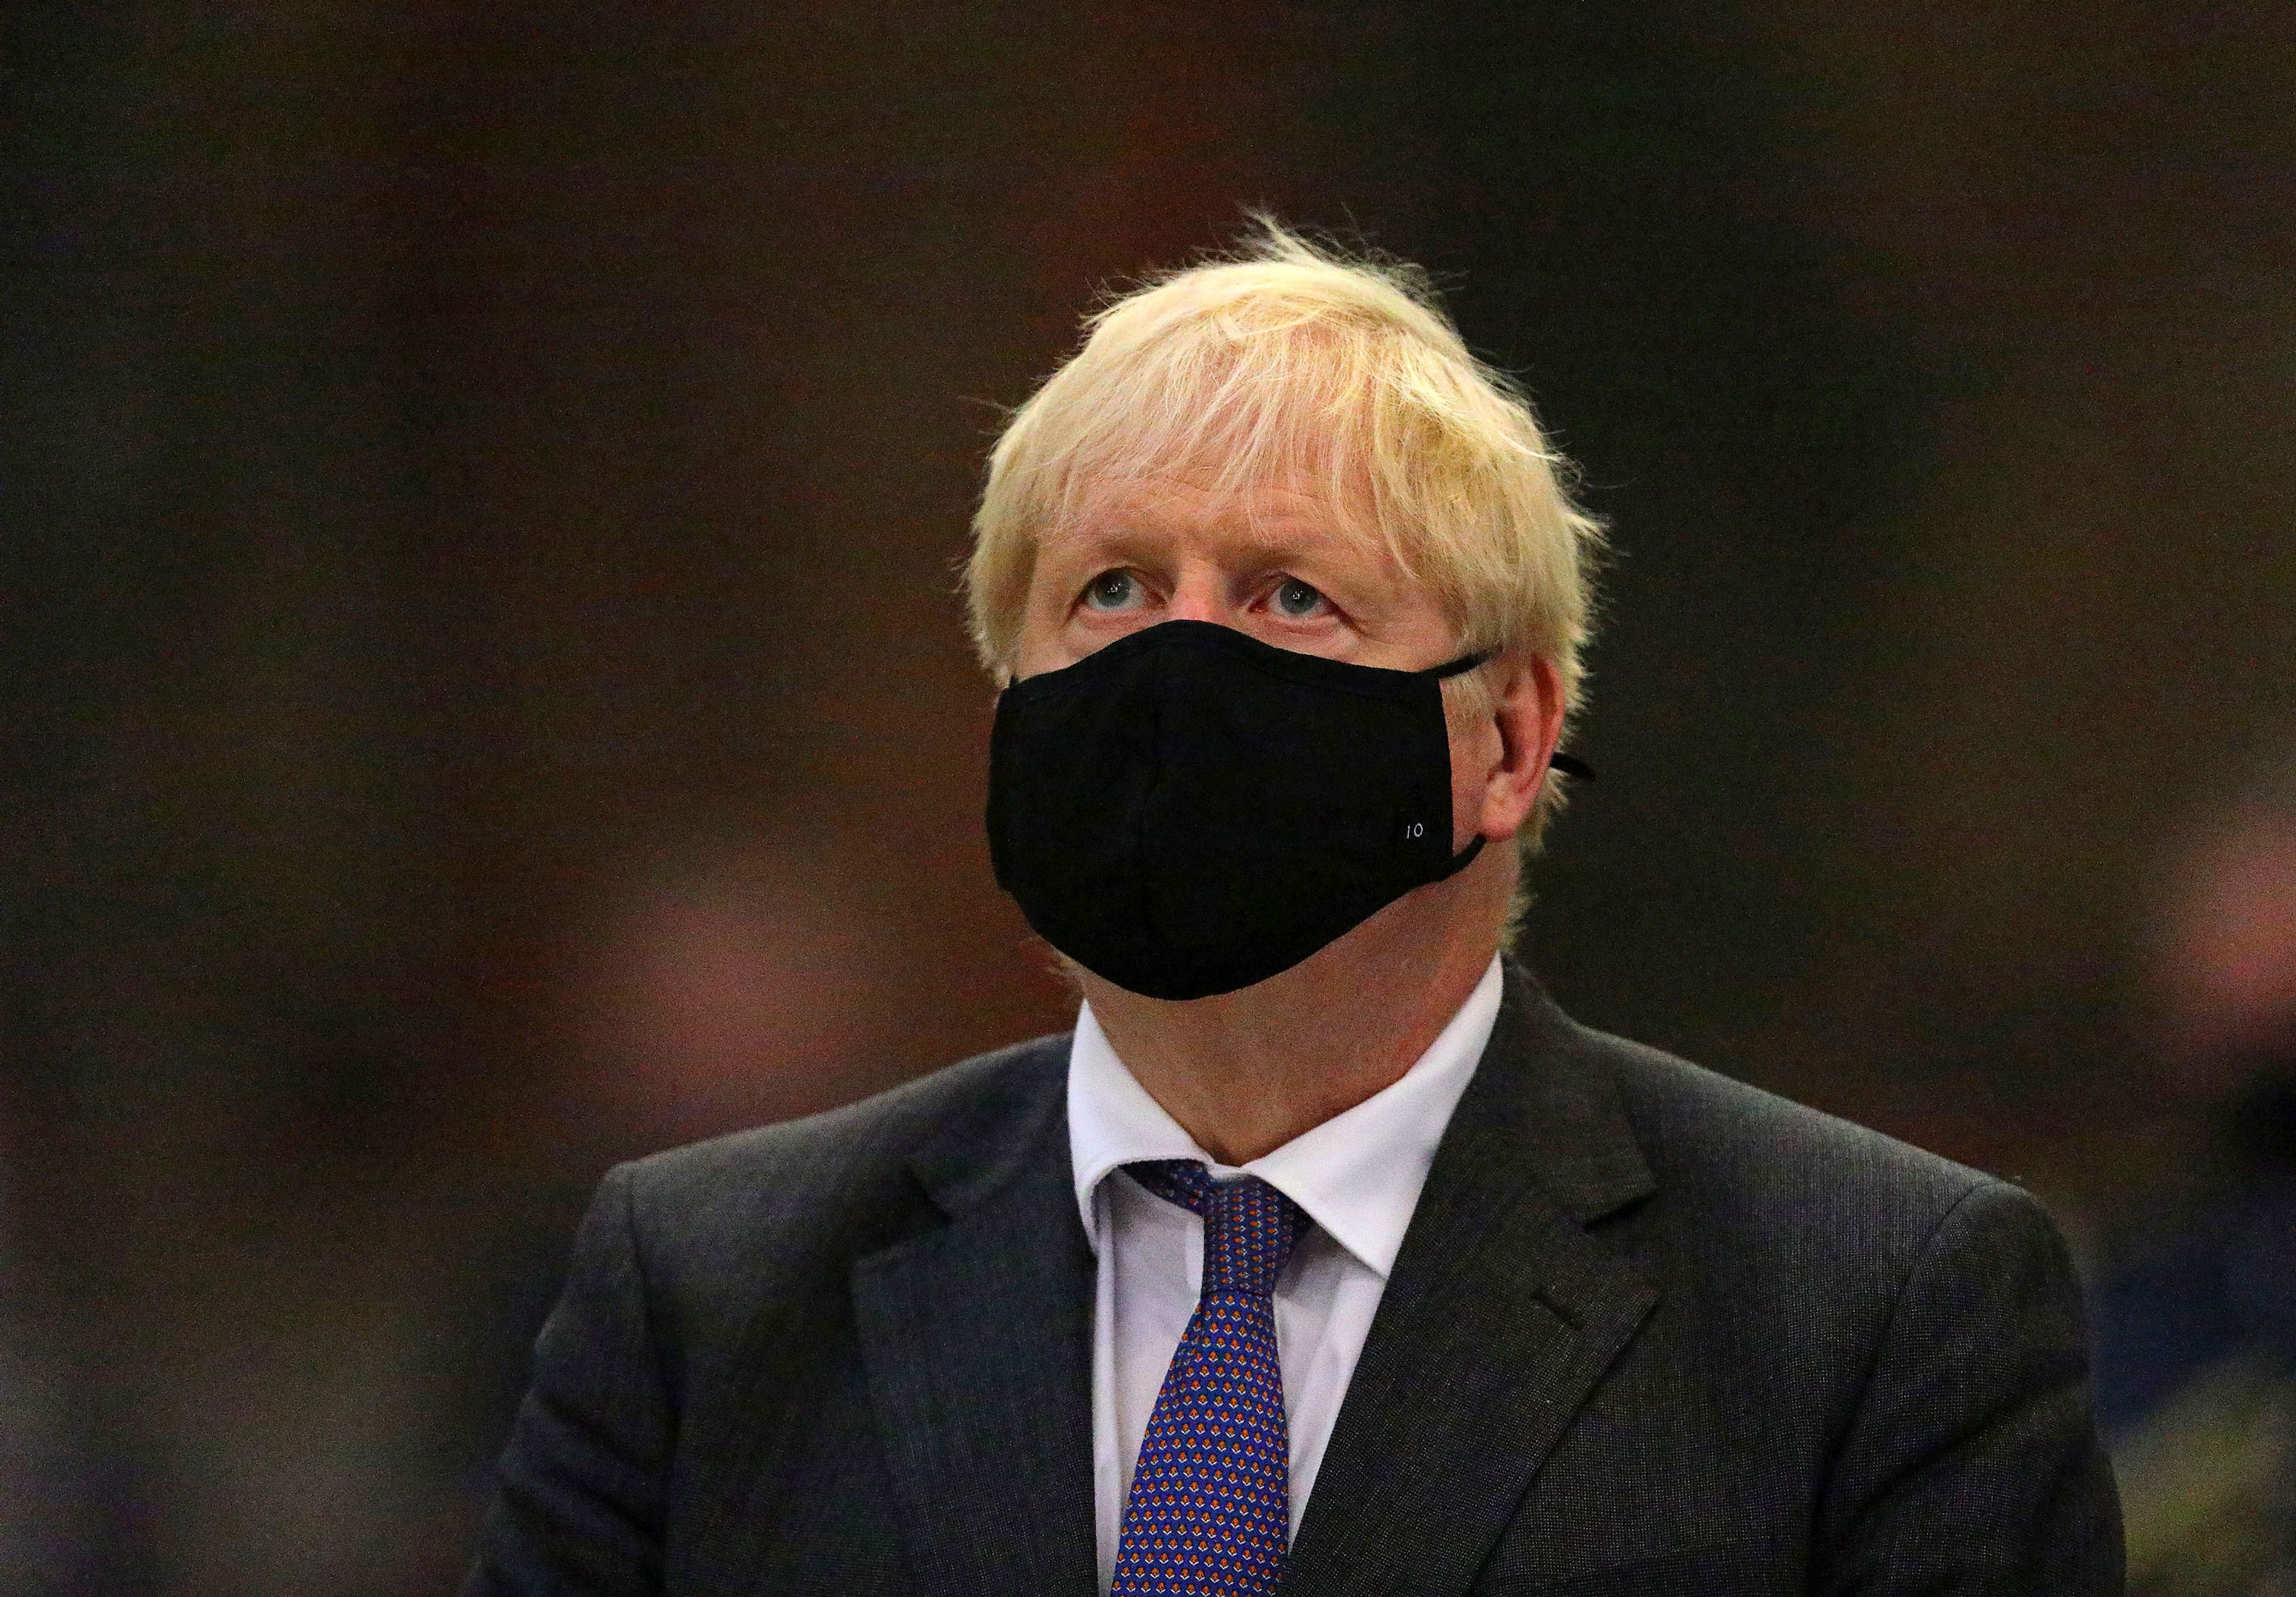 British Prime Minister Boris Johnson attends a service in London on September 20.